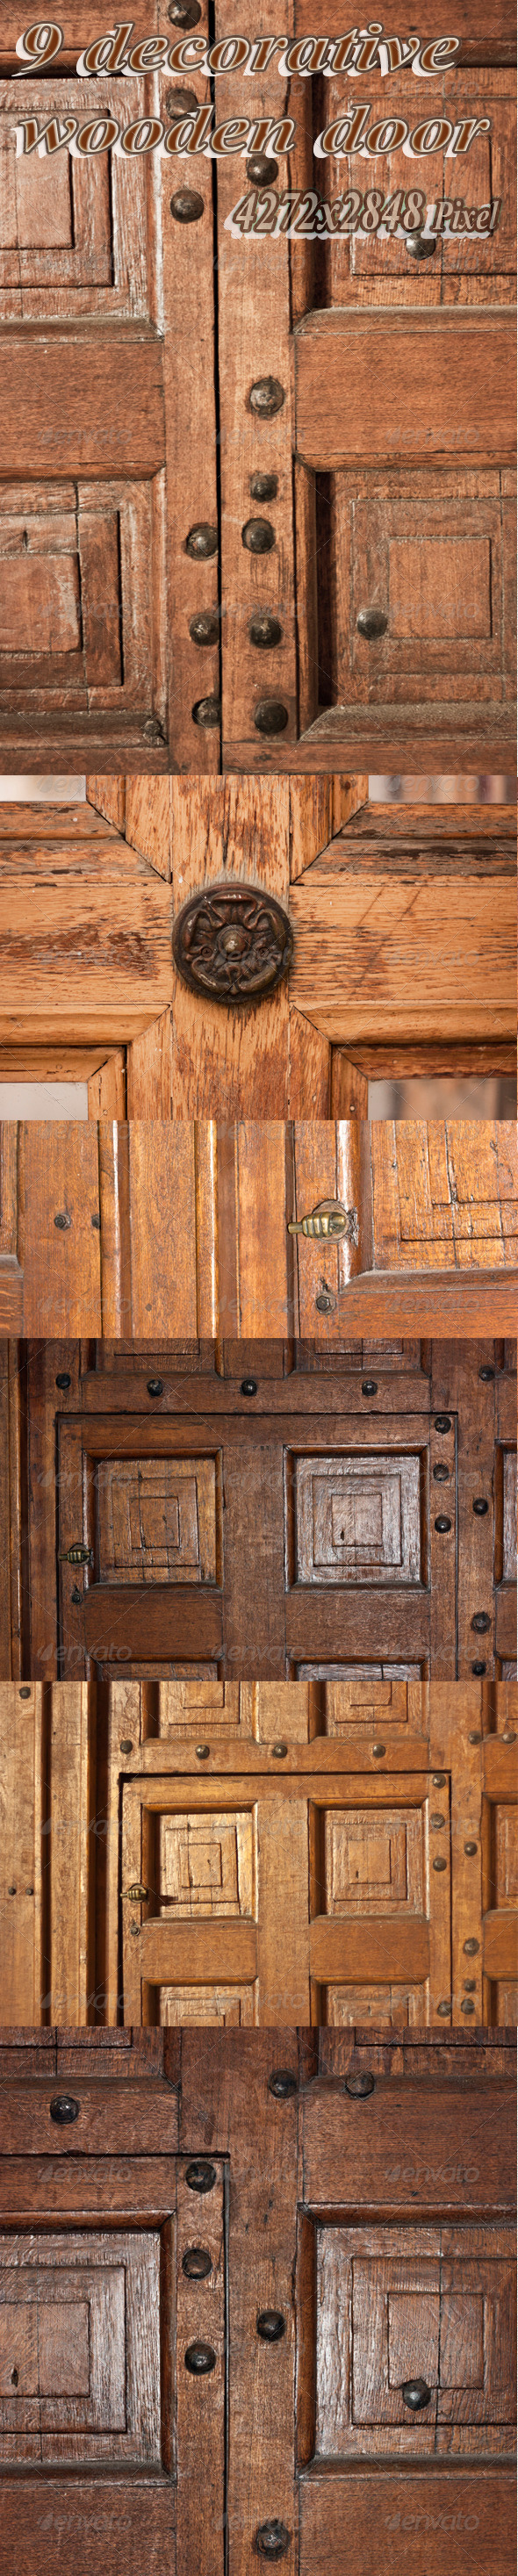 Decorative Wooden Door - Wood Textures